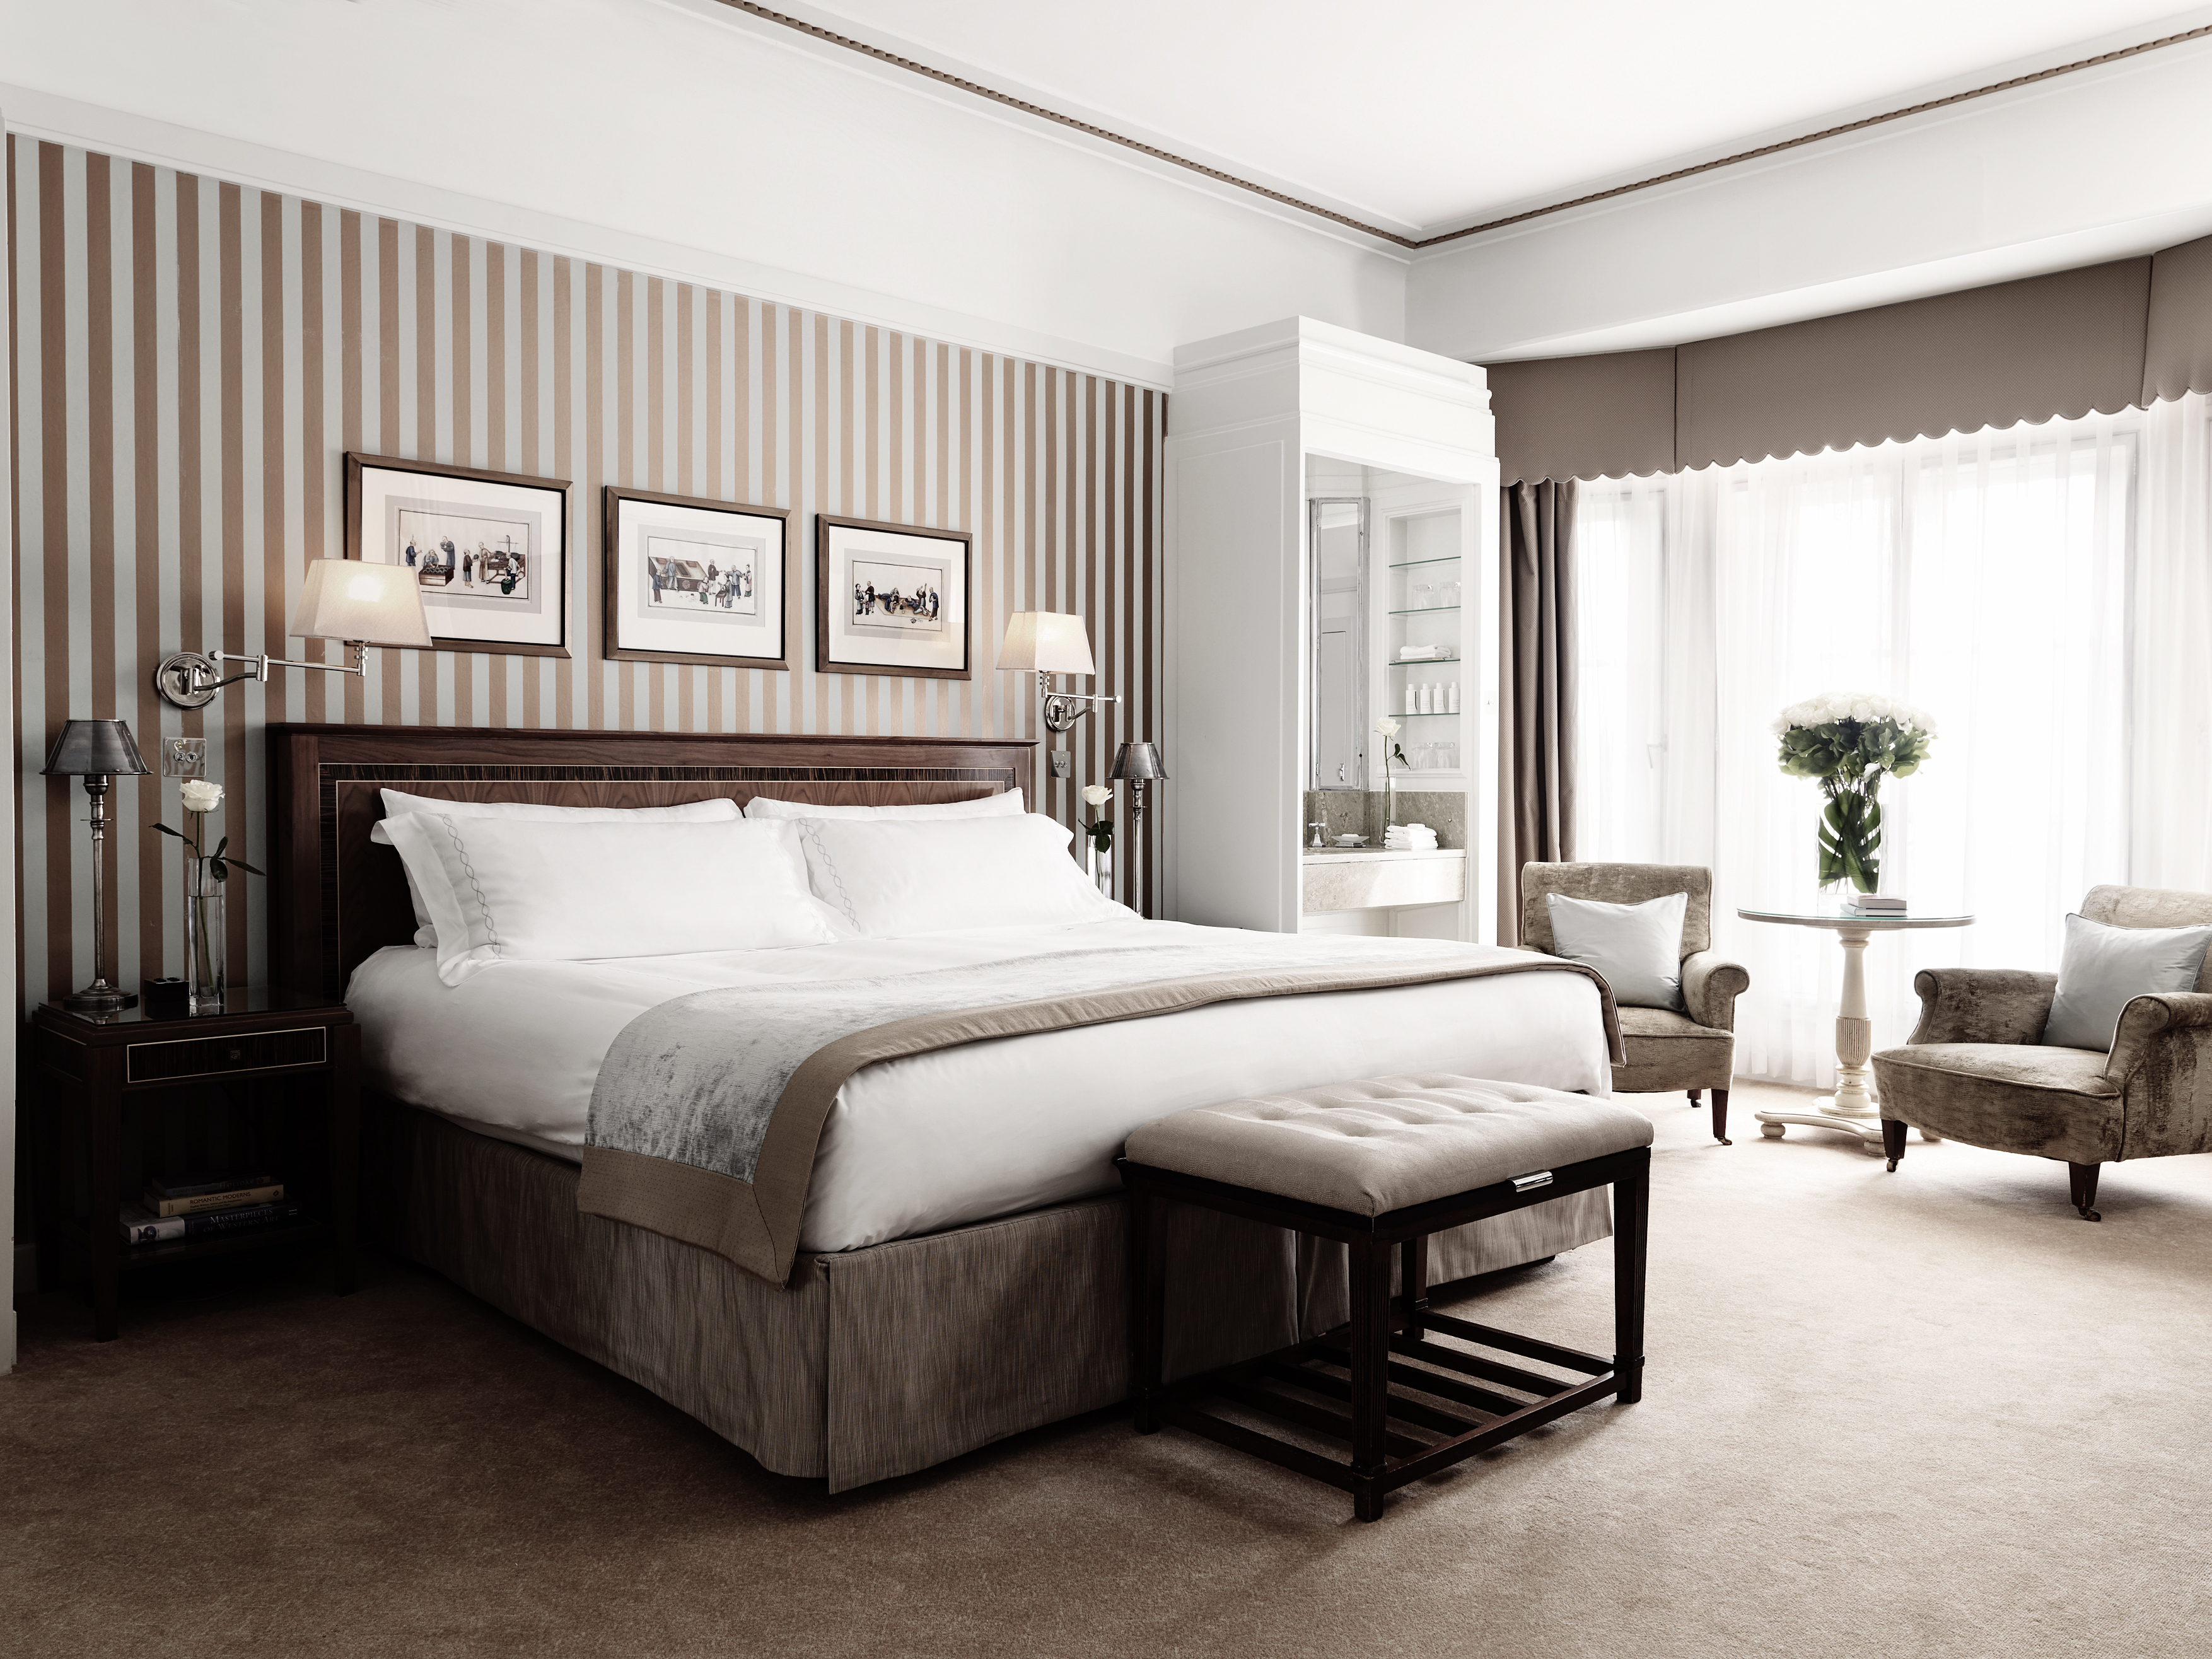 CLA_MayfairSuite_405-06_Bedroom_1-040